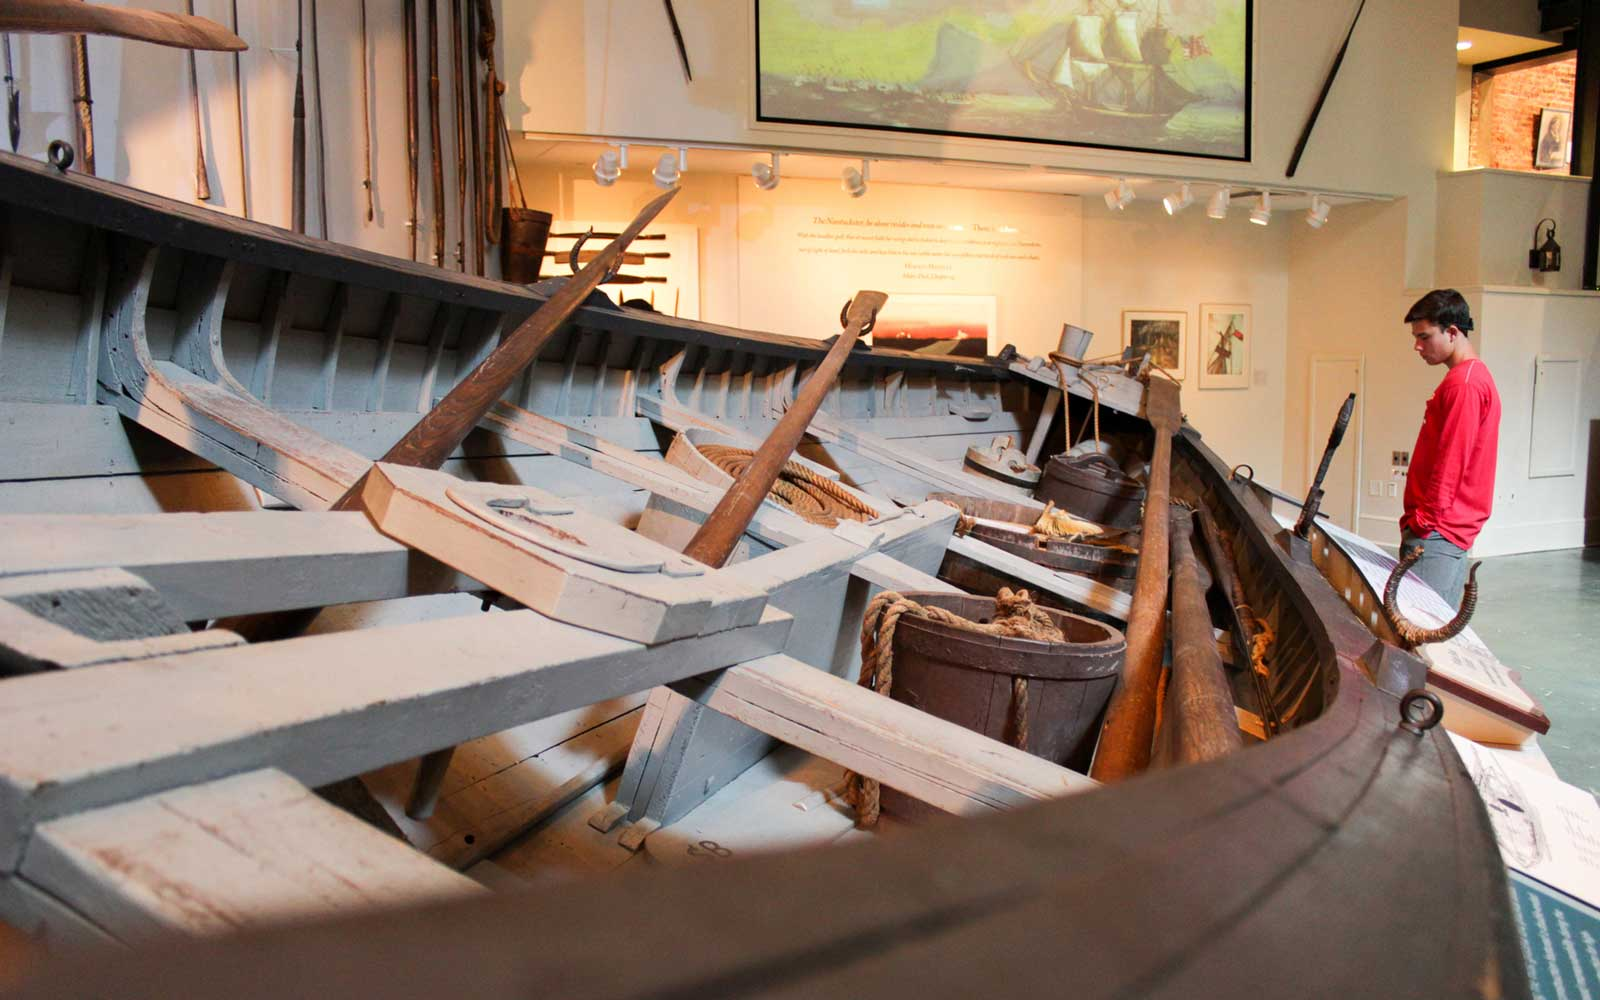 Inside the Nantucket Whaling Museum